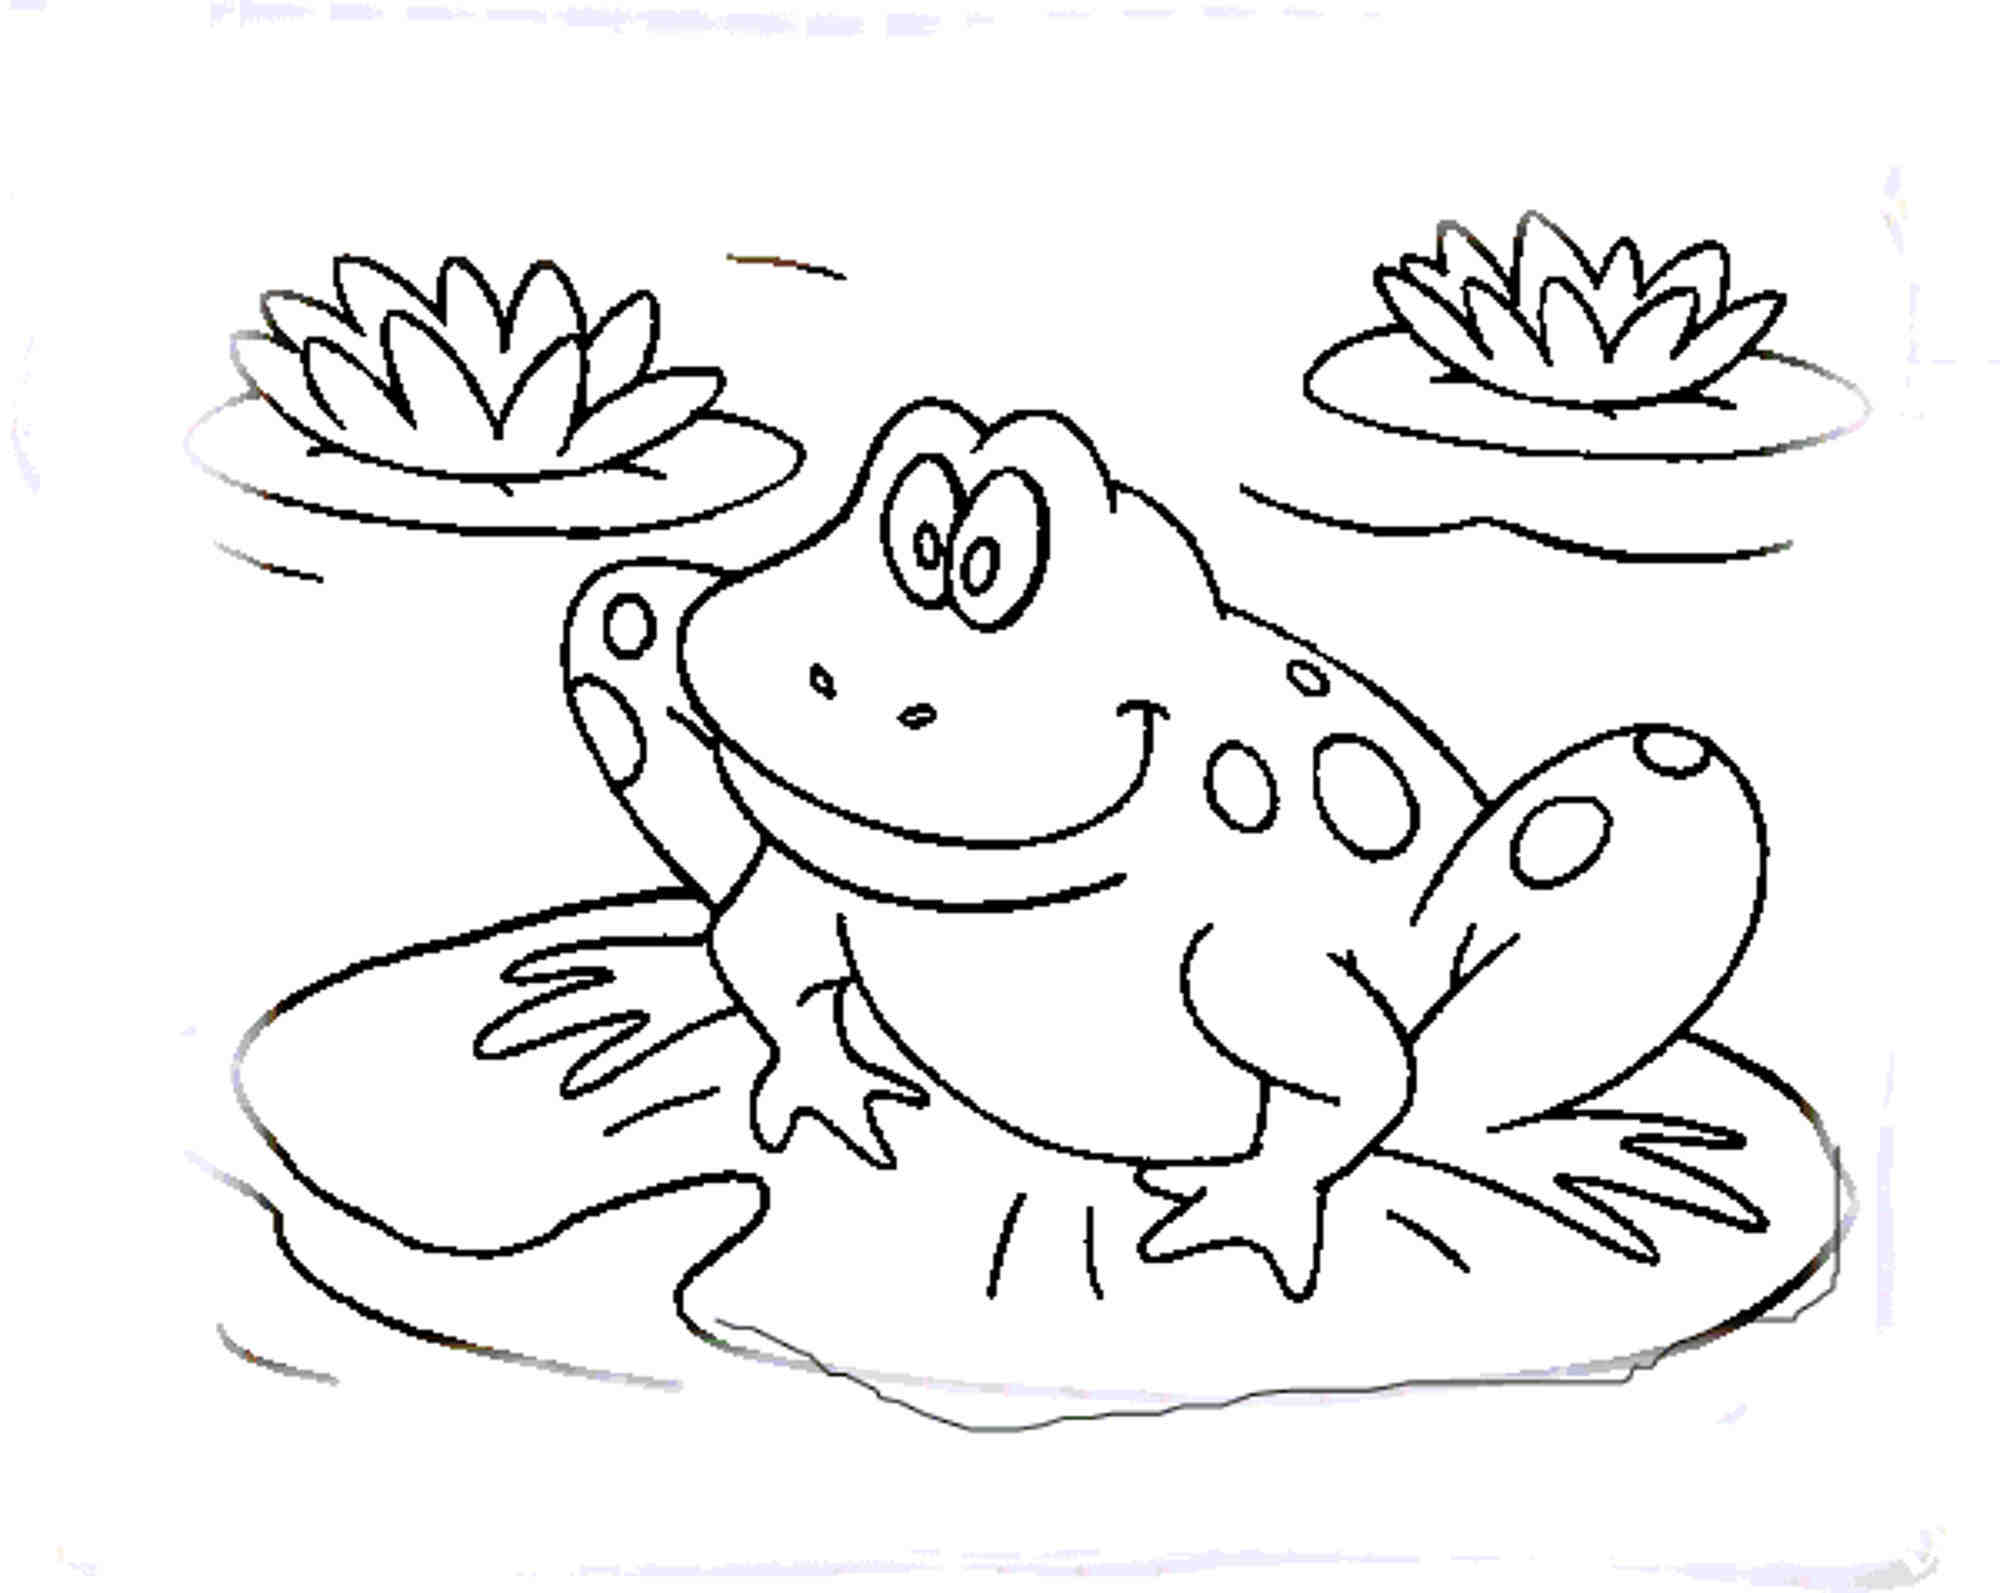 2000x1593 Frog Coloring Pages With Wallpaper Picture Mayapurjacouture Frog